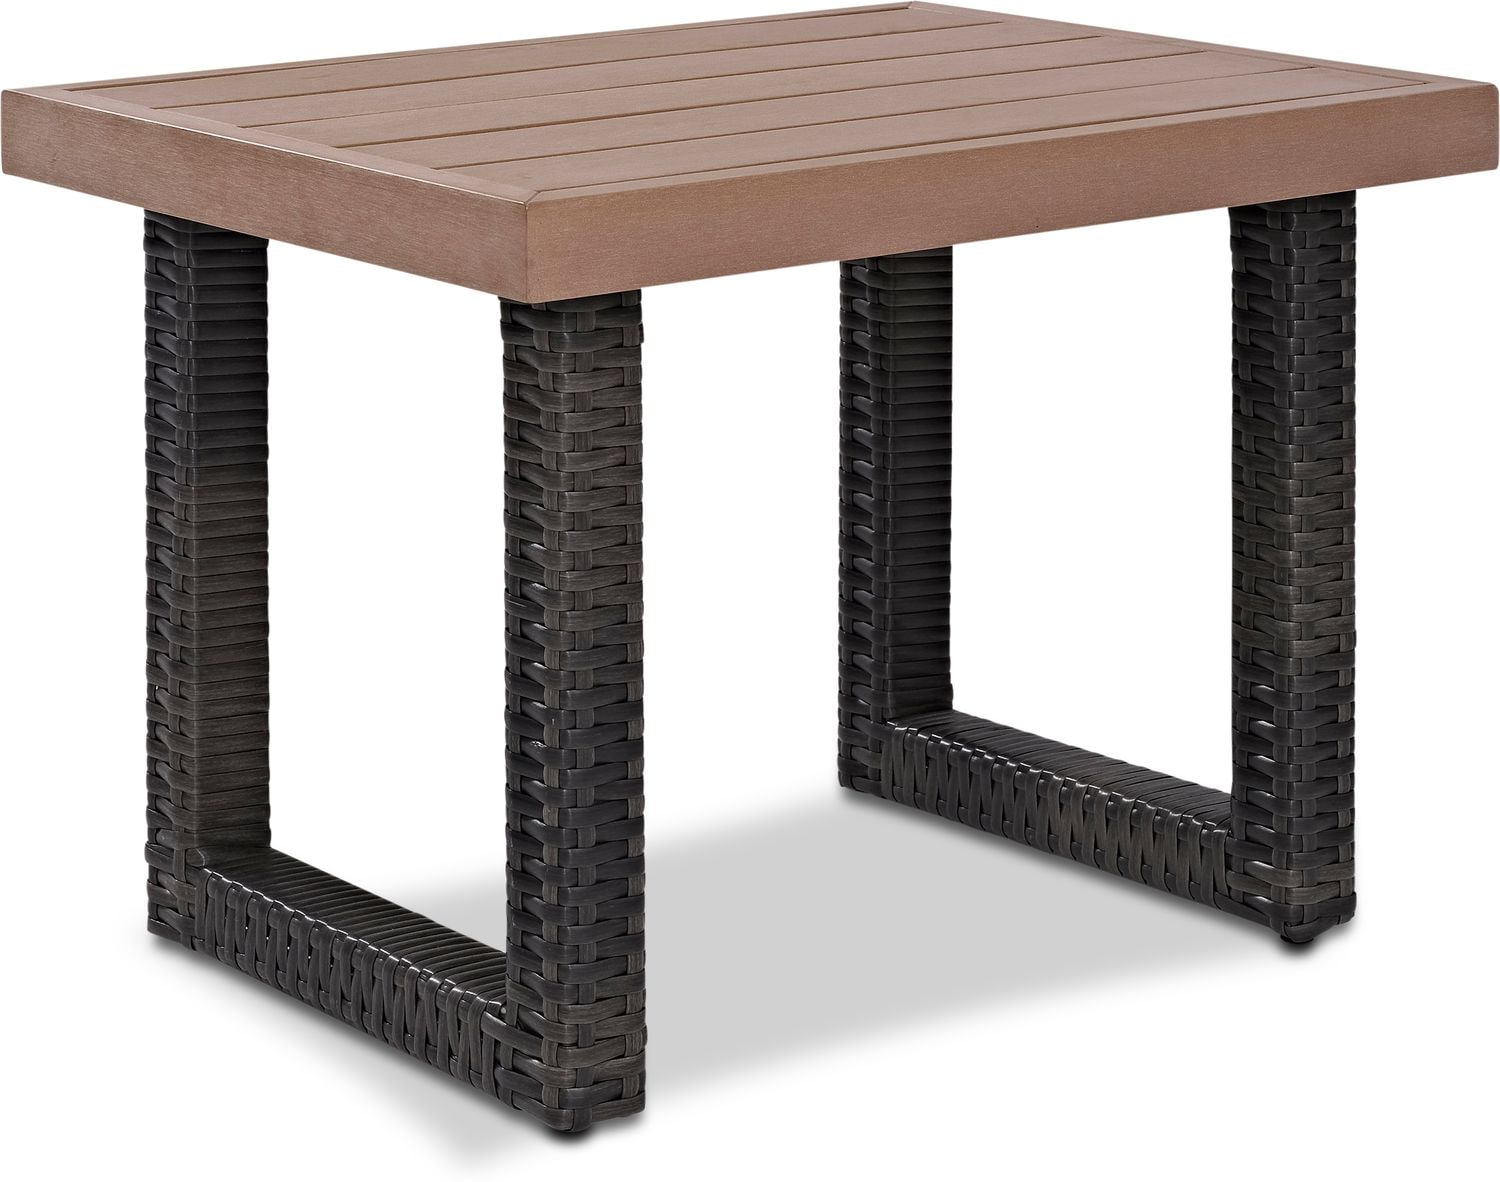 Outdoor Furniture - Tethys Outdoor End Table - Brown